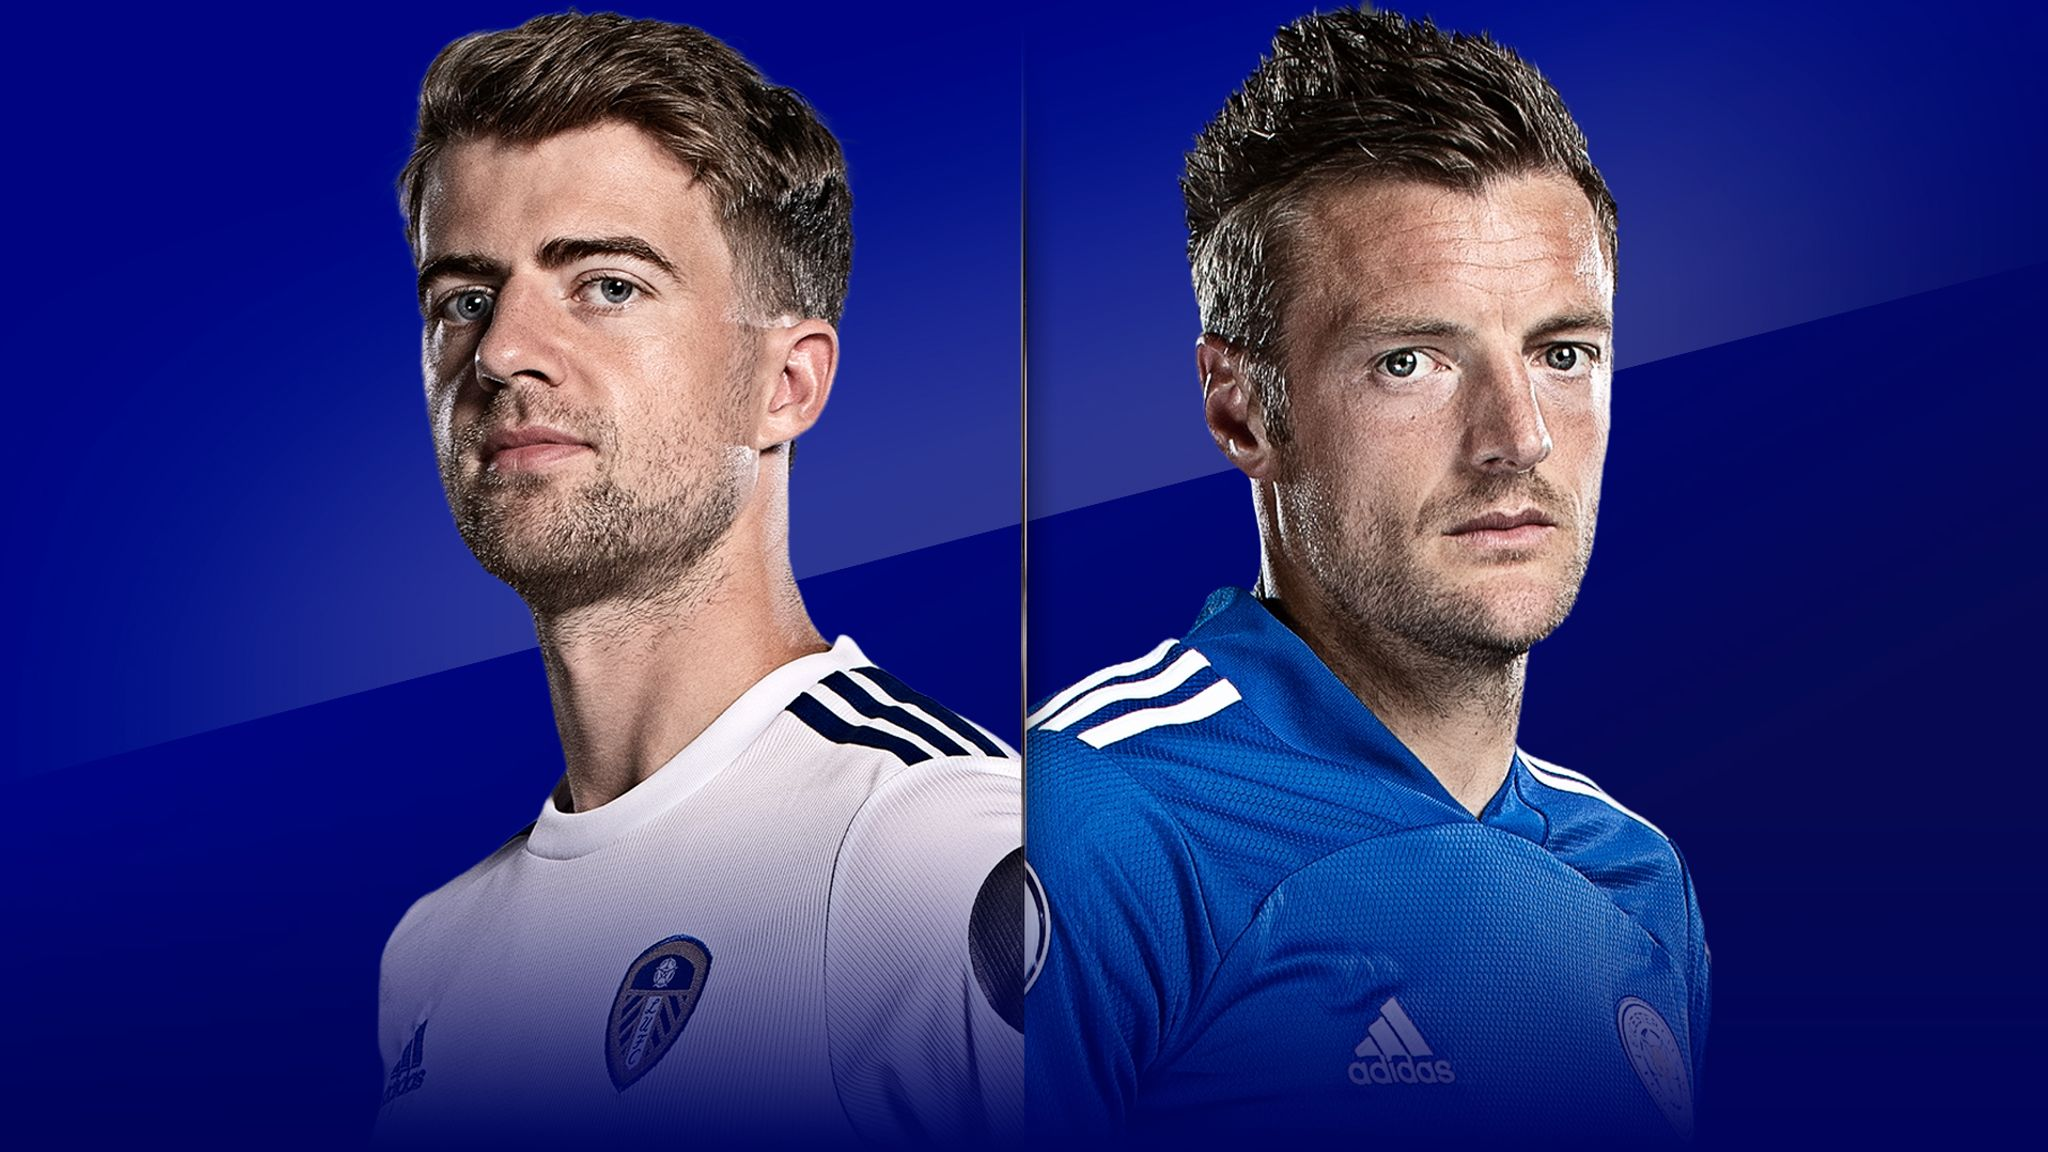 Live match preview - Leeds vs Leicester 02.11.2020